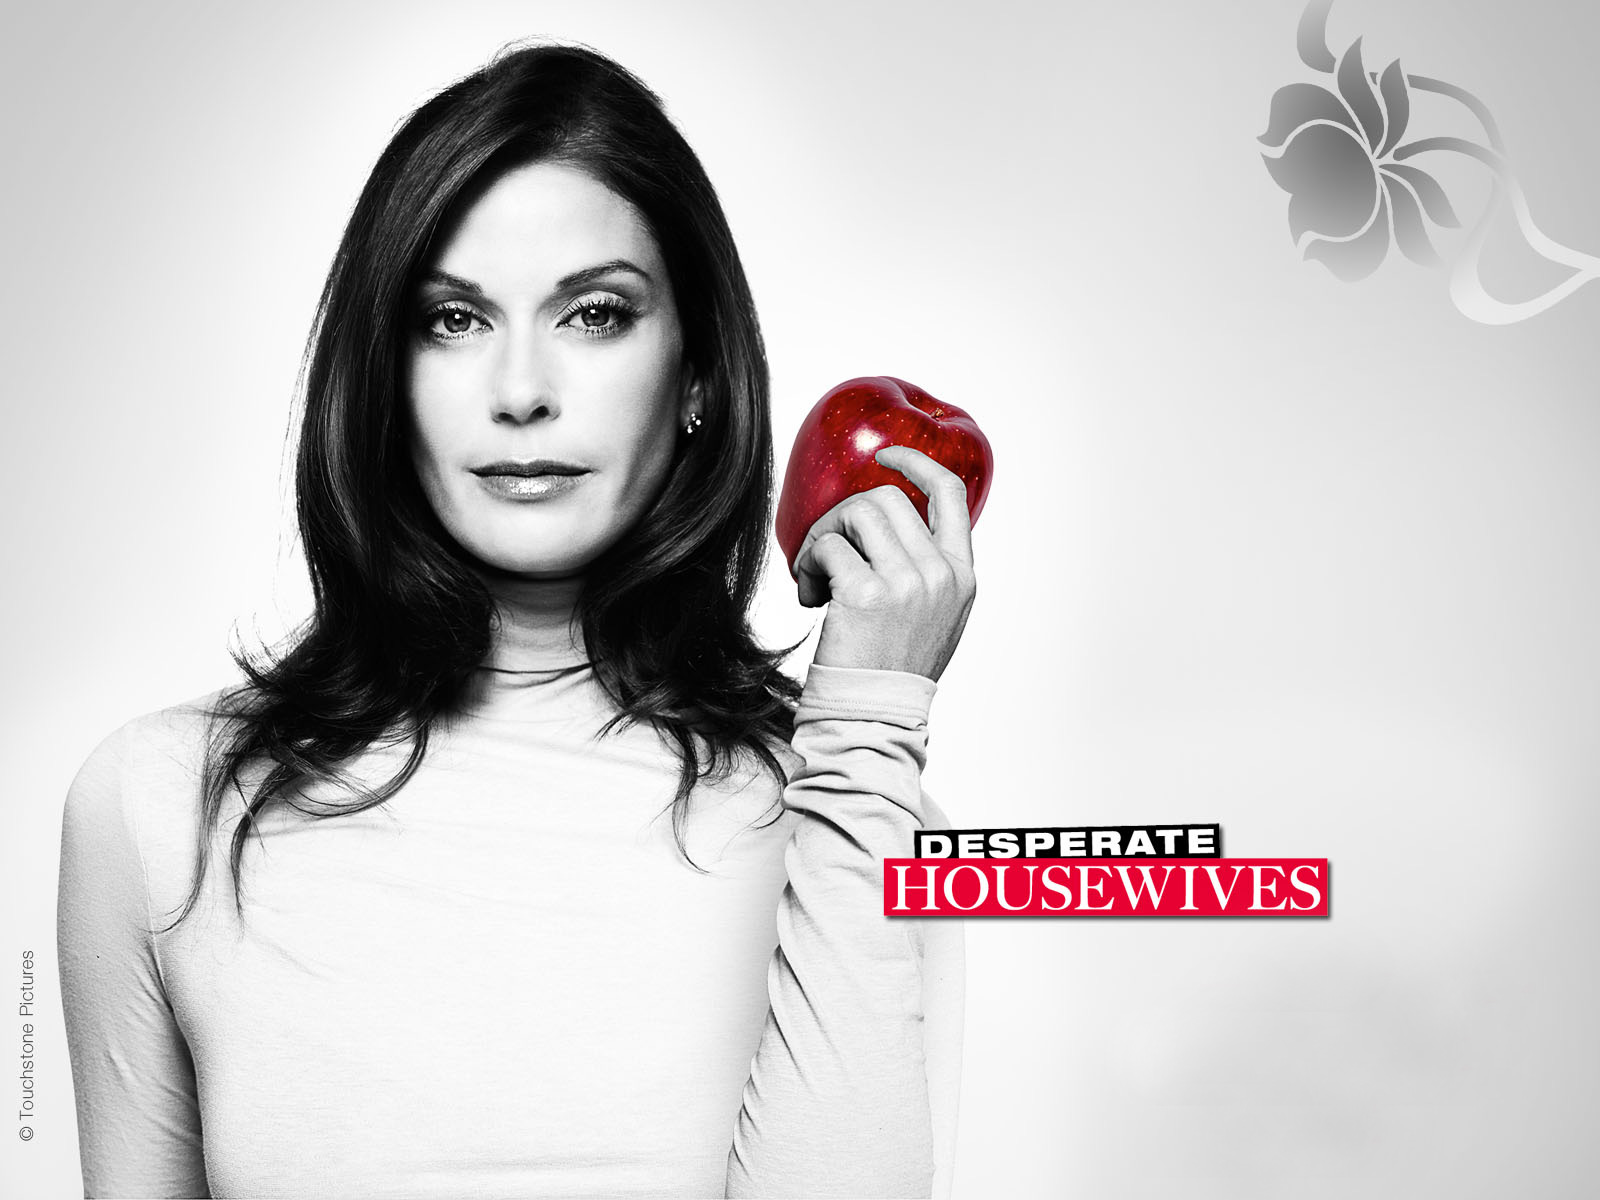 Desperate Housewives Wallpapers HD Wallpapers - desperate housewives wallpapers